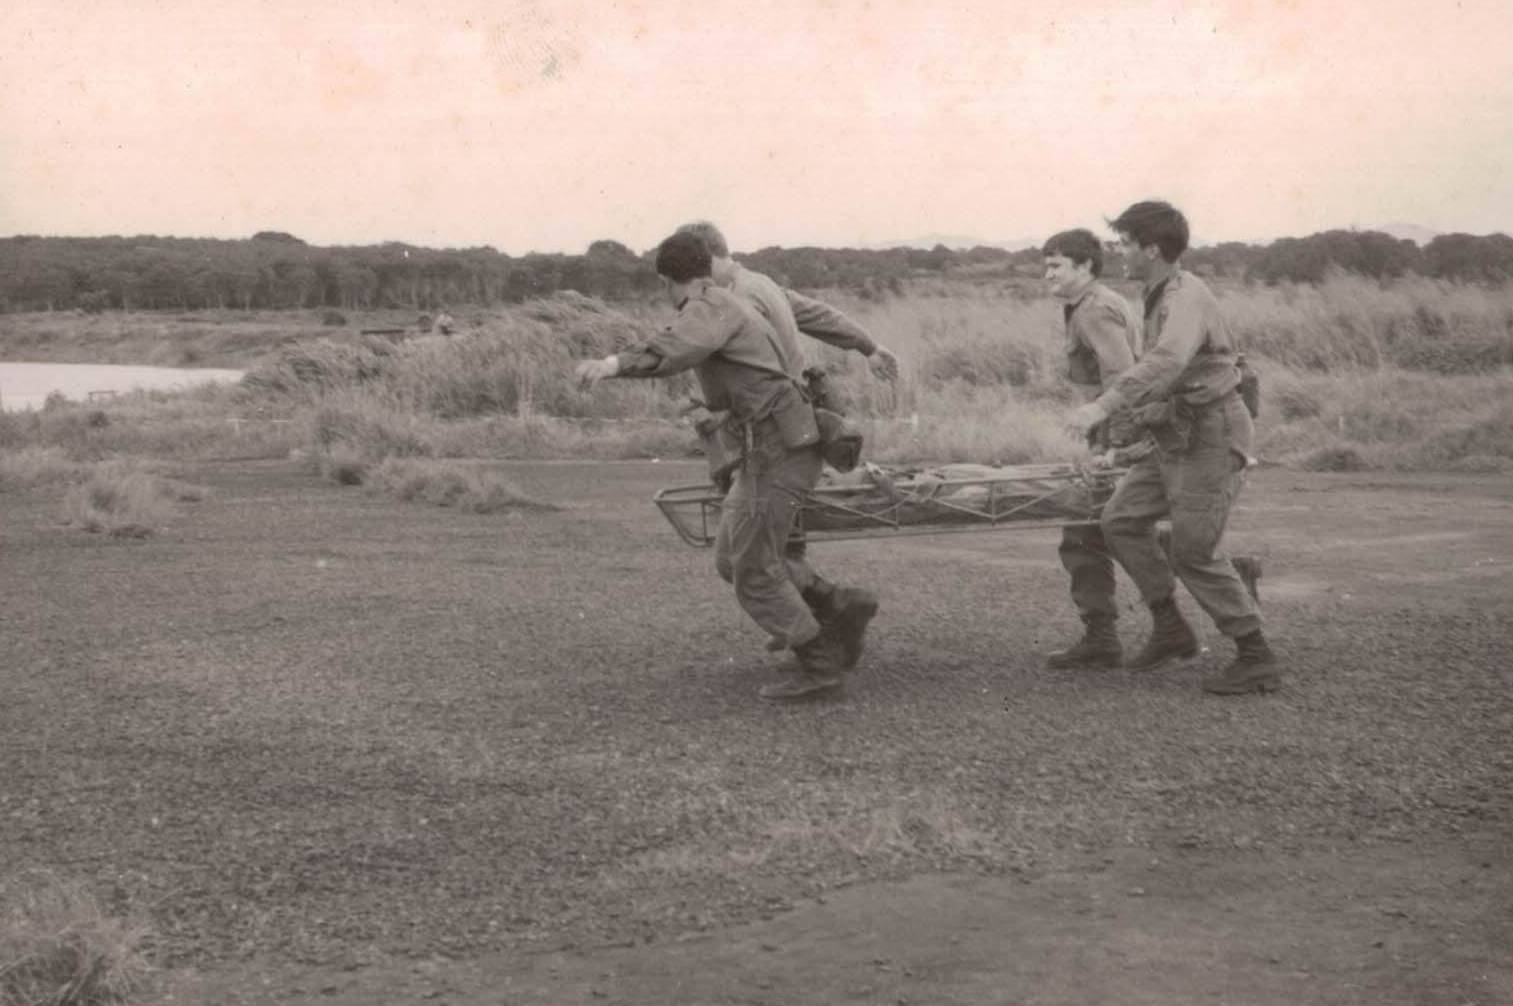 Members of 1 FD SQN GP practicing medical evacuation.  Rowes Lagoon in background – 1971.